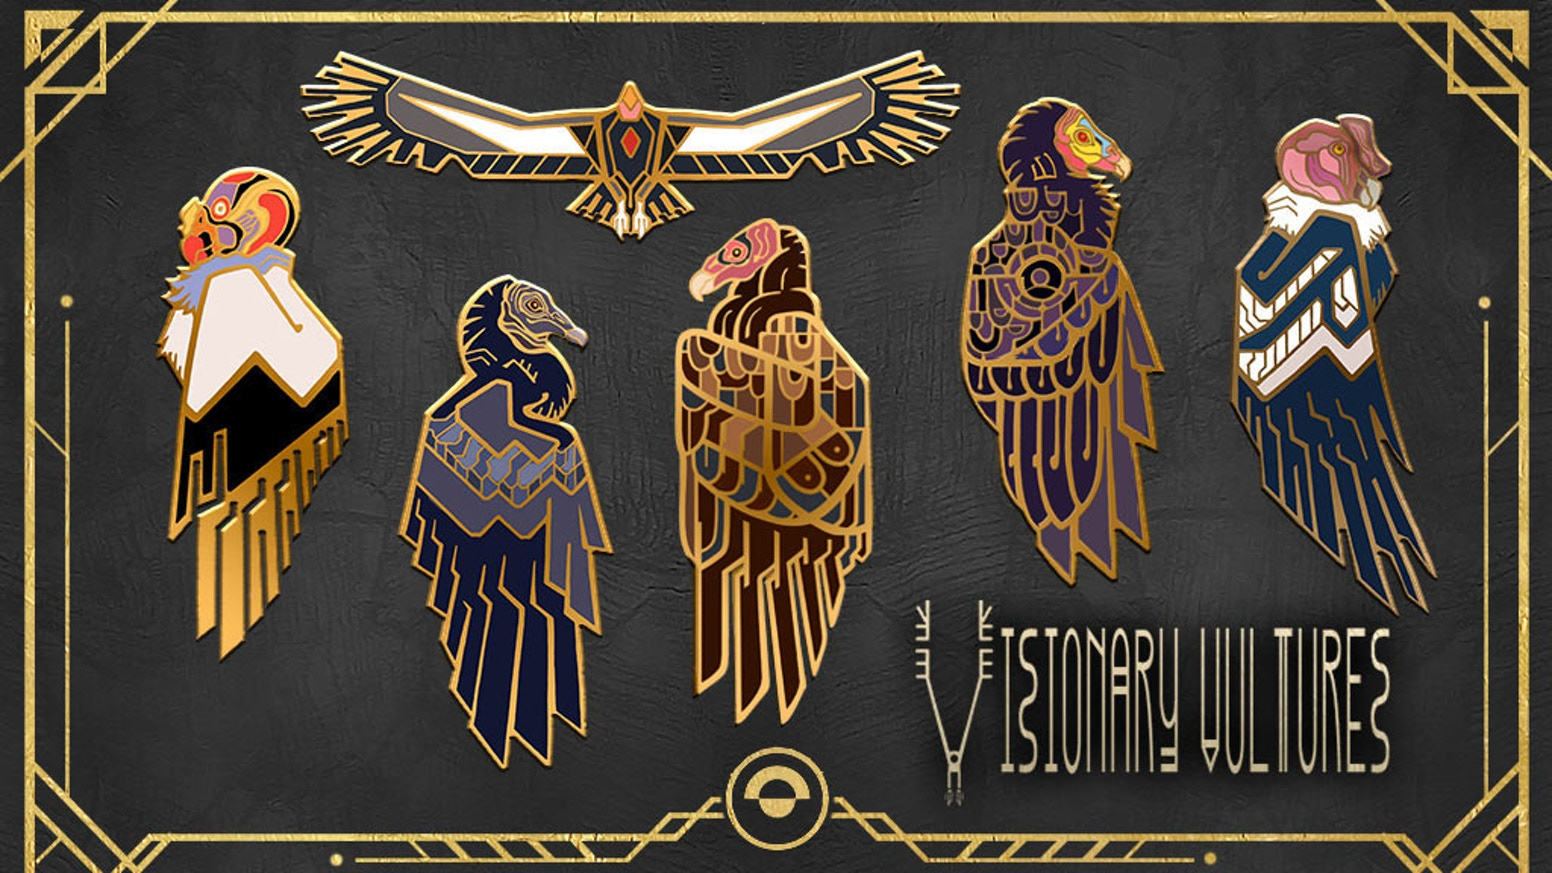 A stunning collection of pins celebrating the New World vulture family and supporting awareness of endangered vulture conservation.